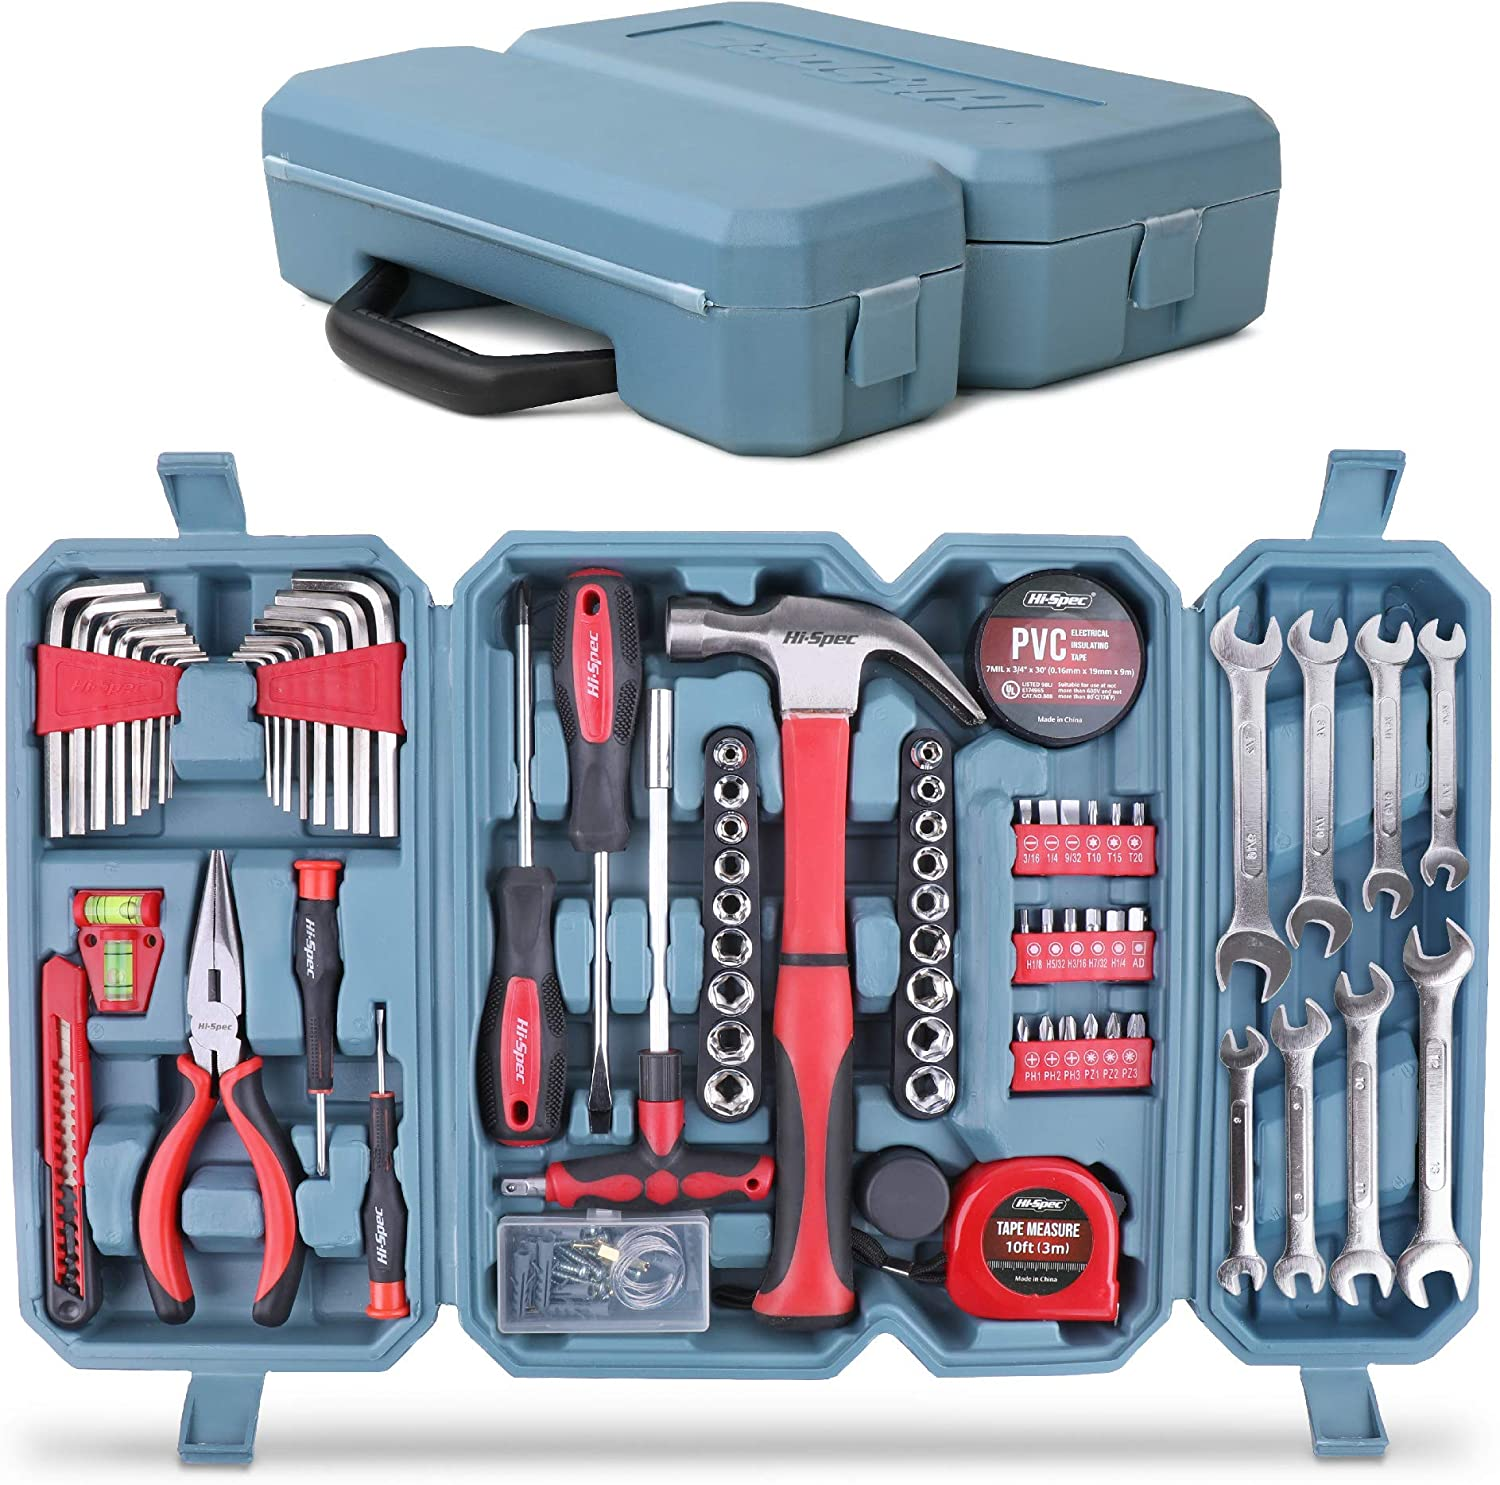 Hi-Spec 73 Piece Home & Garage Multi Tool Kit Set. Practical Hand Tools for DIY Repair & Maintenance in The Home, Garage and Workshop. All in a Swing-Door Carry Case